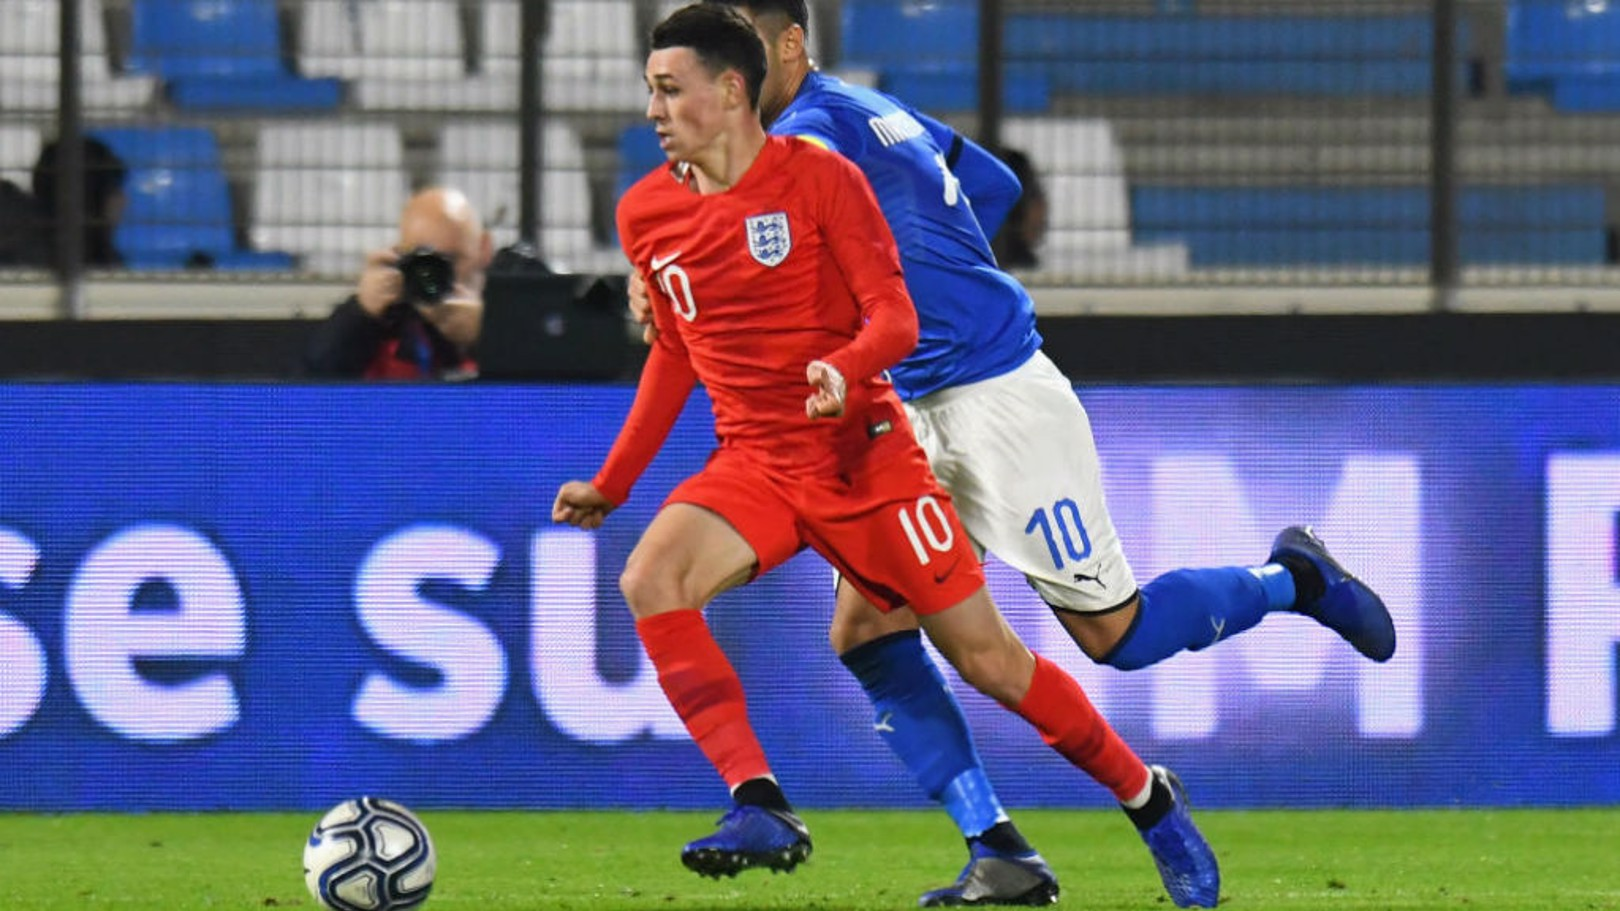 Foden named in England U21 squad for Euro 2019